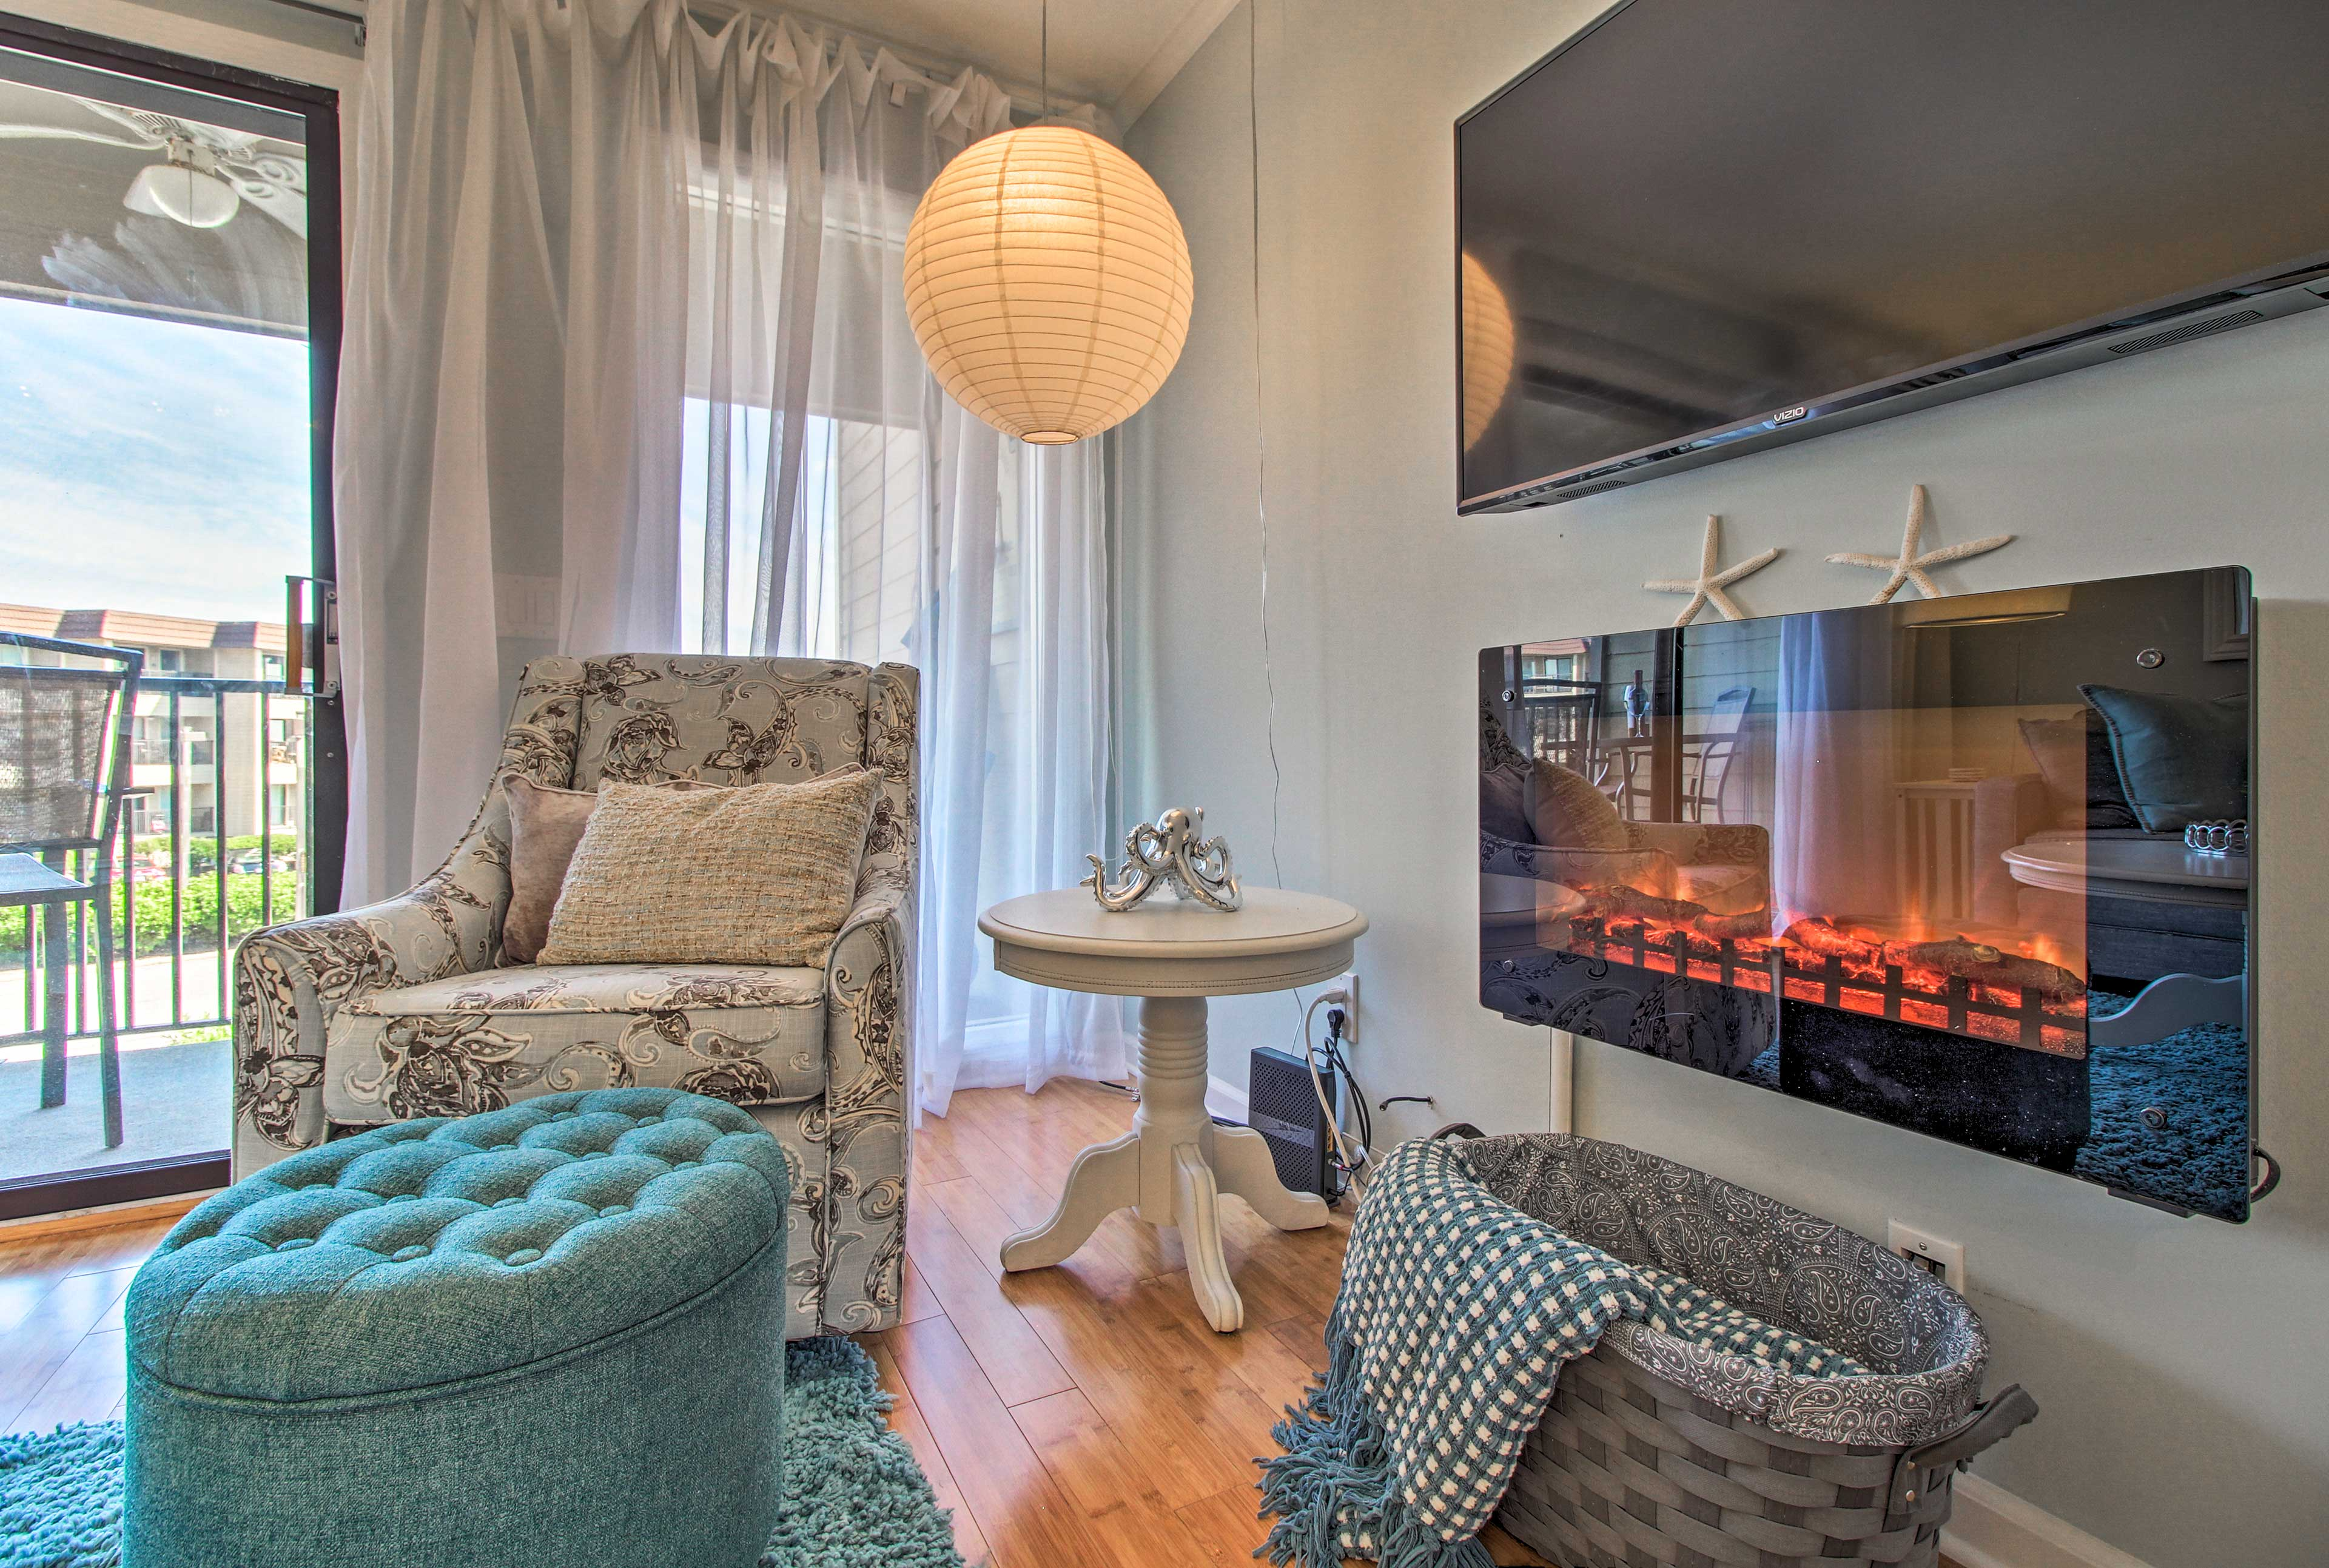 Turn on the electric fireplace for cozy evenings in.